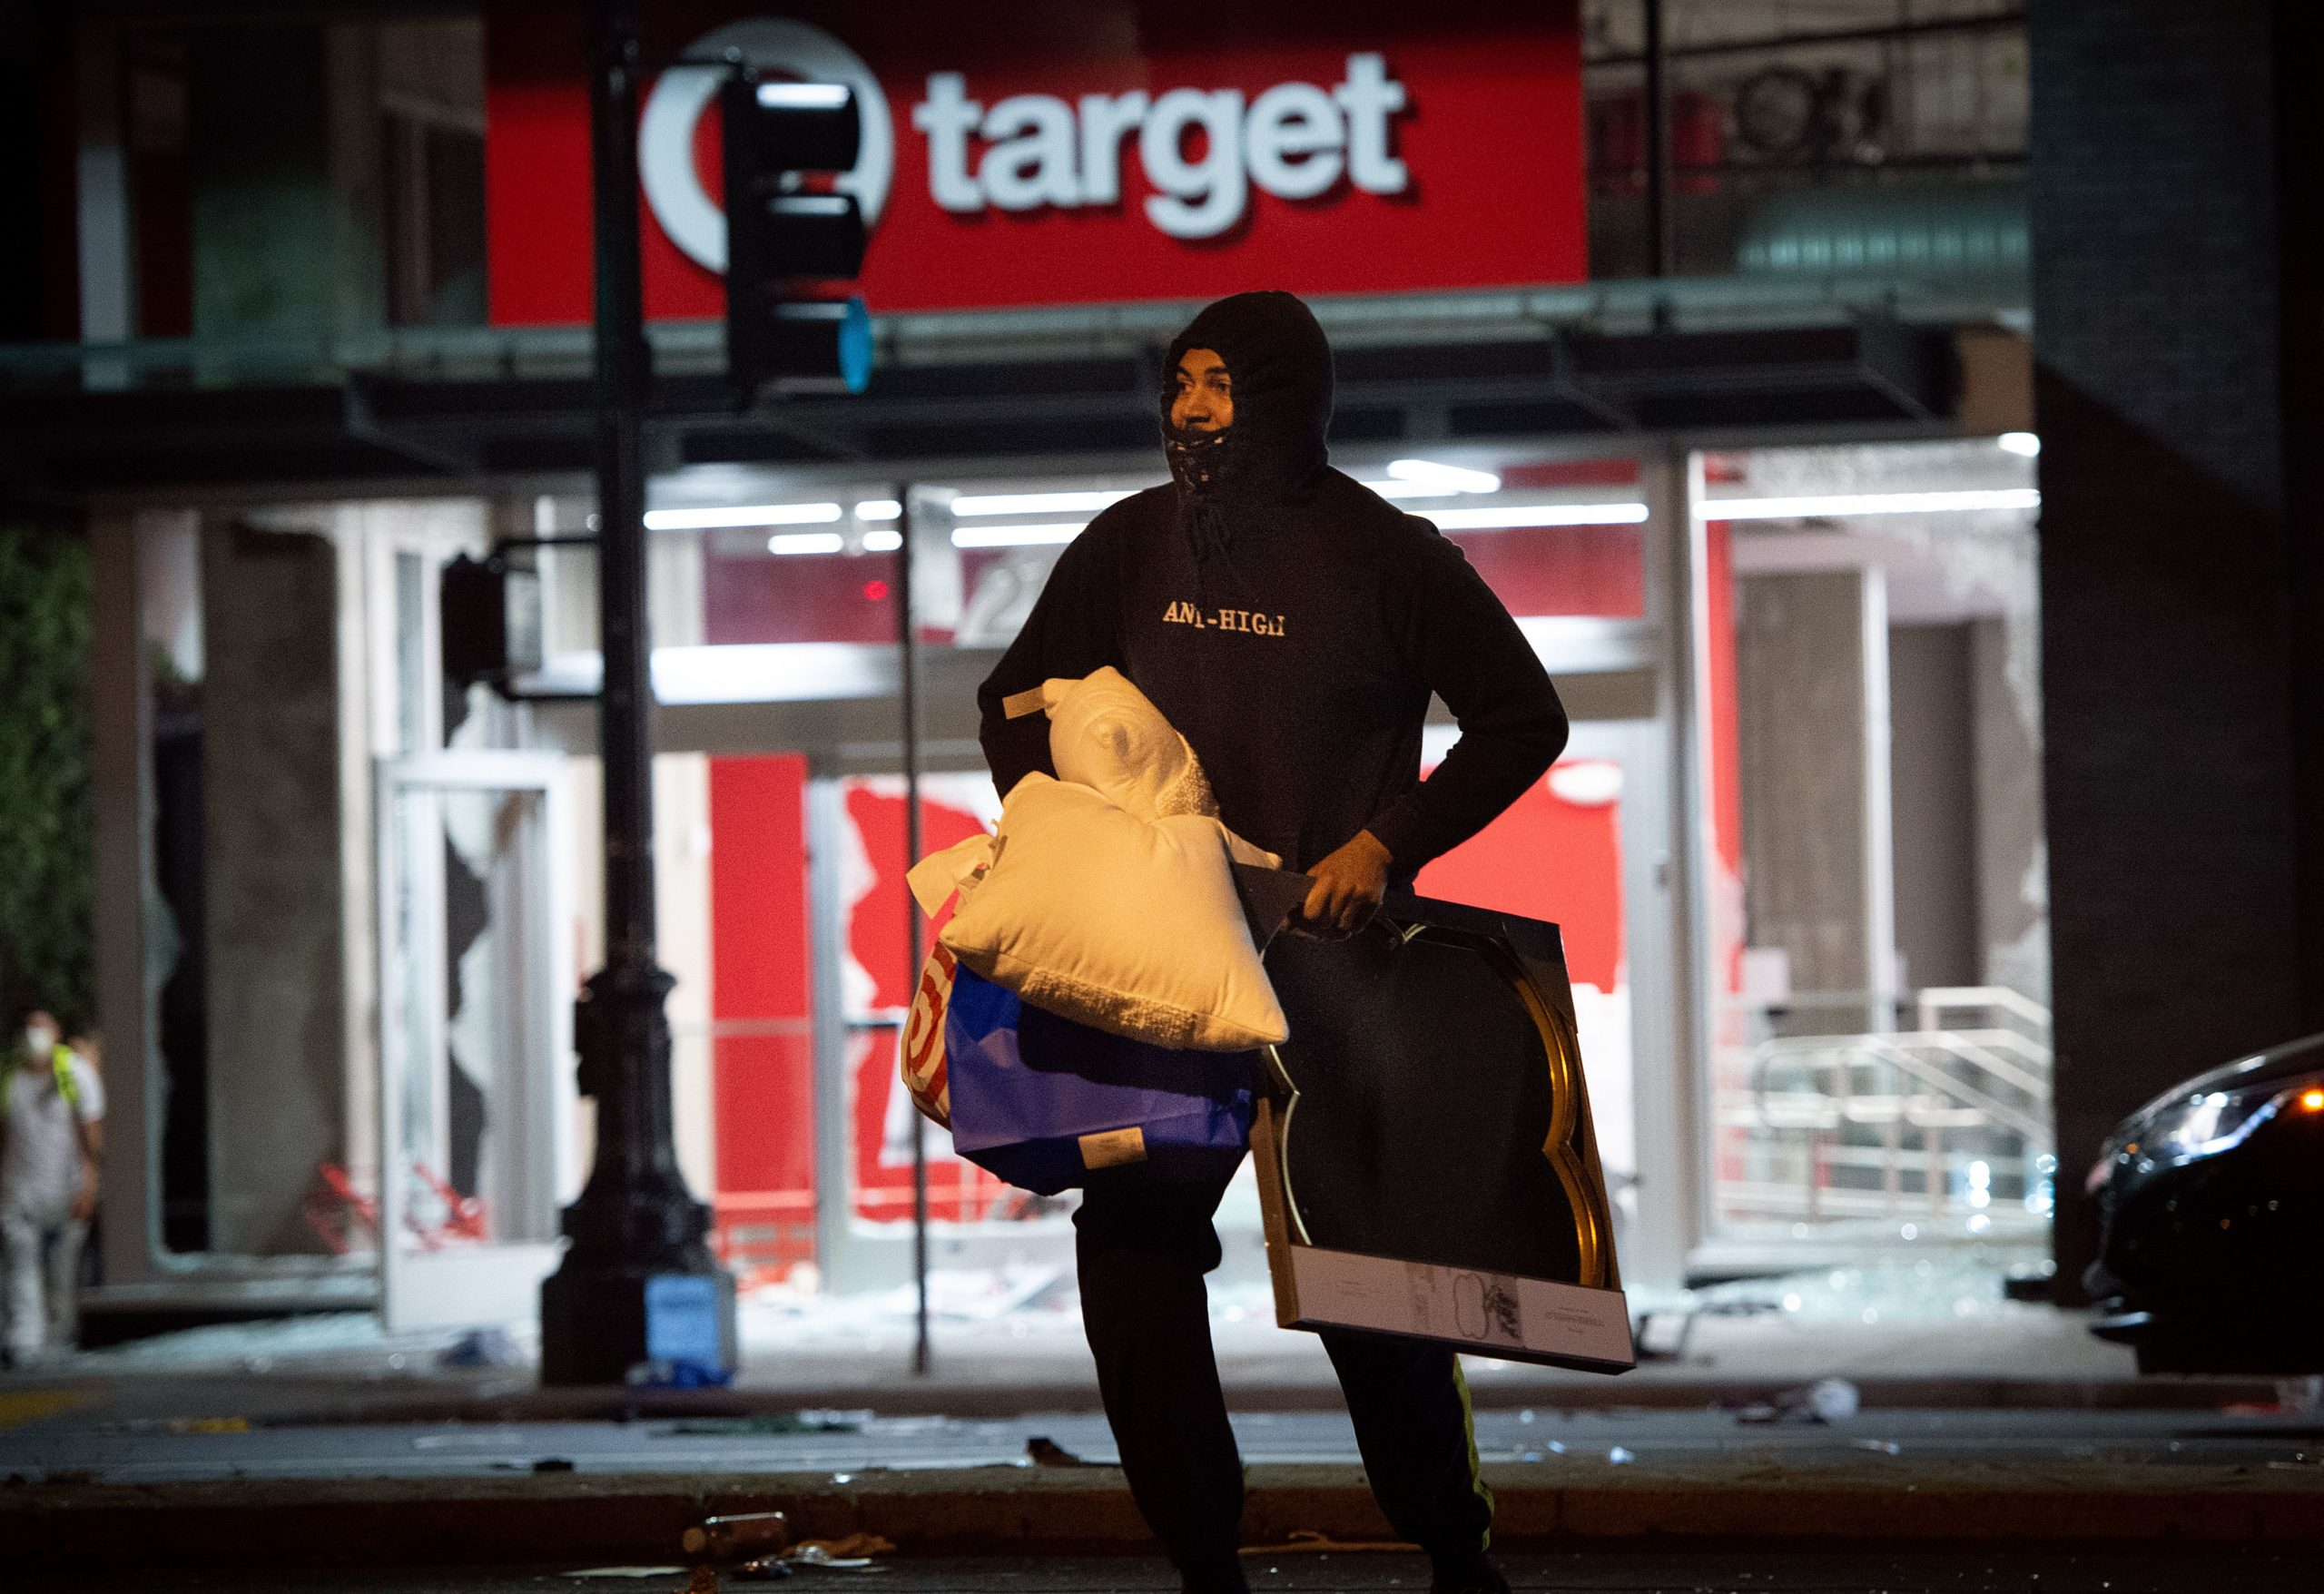 A looter rob a Target store as protesters face off against police in Oakland California on May 30, 2020, over the death of George Floyd, a black man who died after a white policeman kneeled on his neck for several minutes. - Violent protests erupted across the United States late on May 29 over the death of a handcuffed black man in police custody, with murder charges laid against the arresting Minneapolis officer failing to quell boiling anger (JOSH EDELSON/AFP via Getty Images)